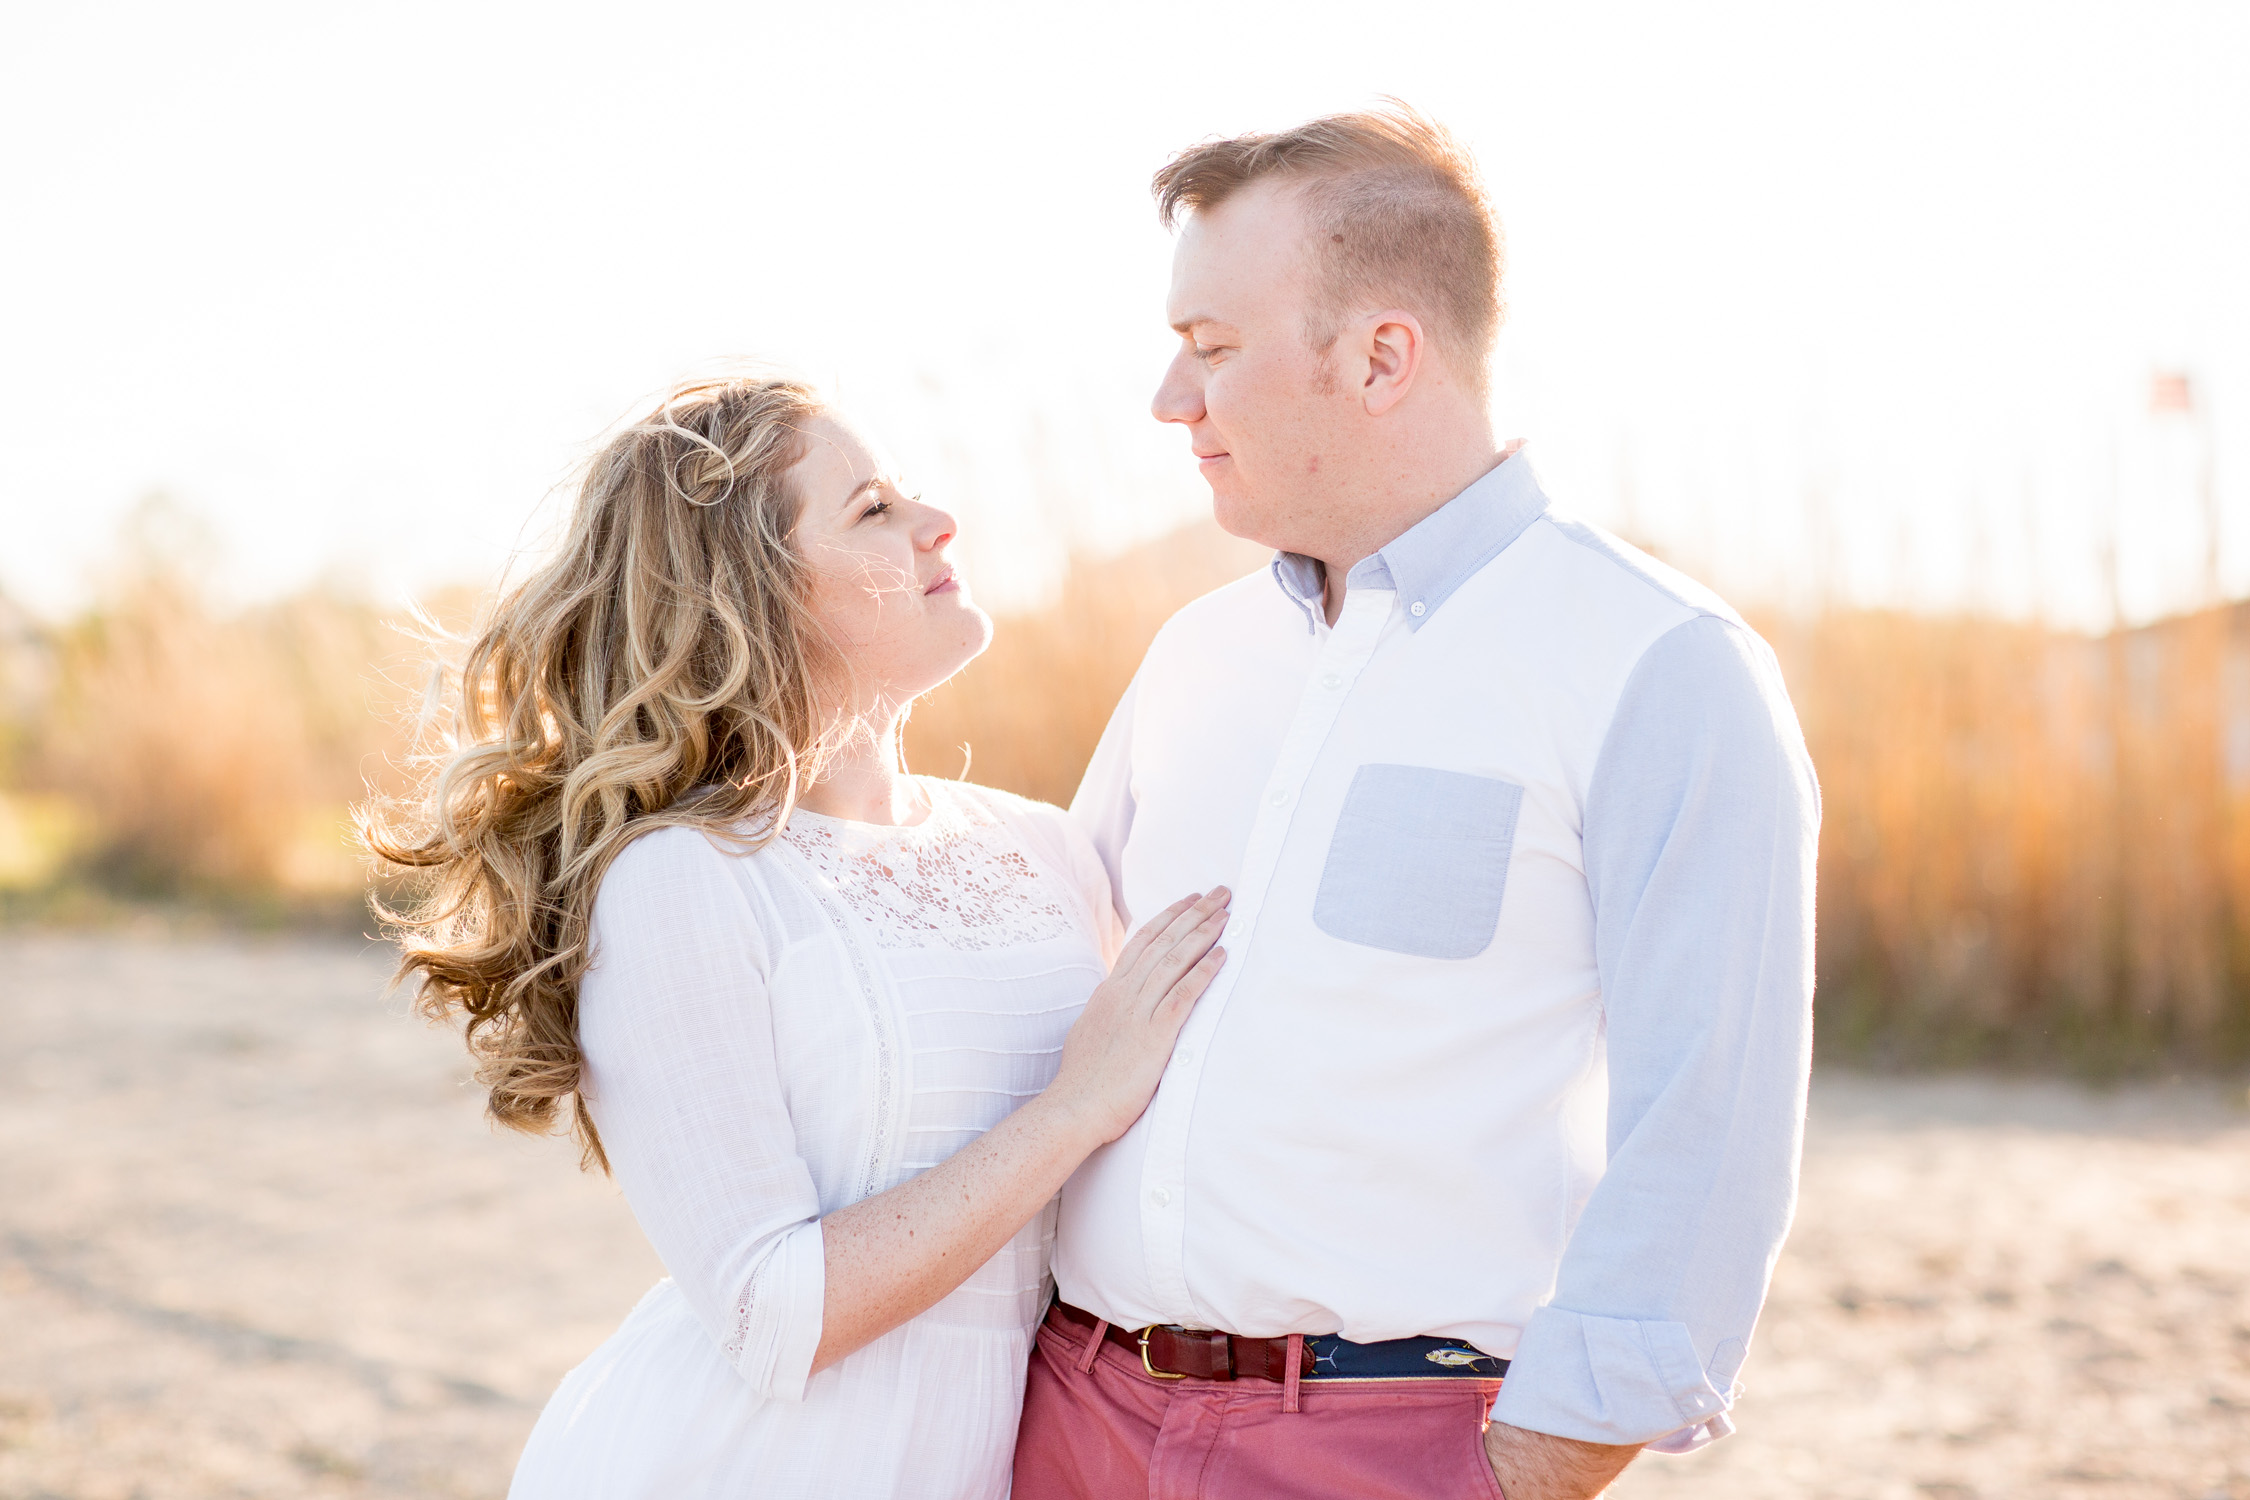 Tracey Buyce Engagement Photography53.jpg